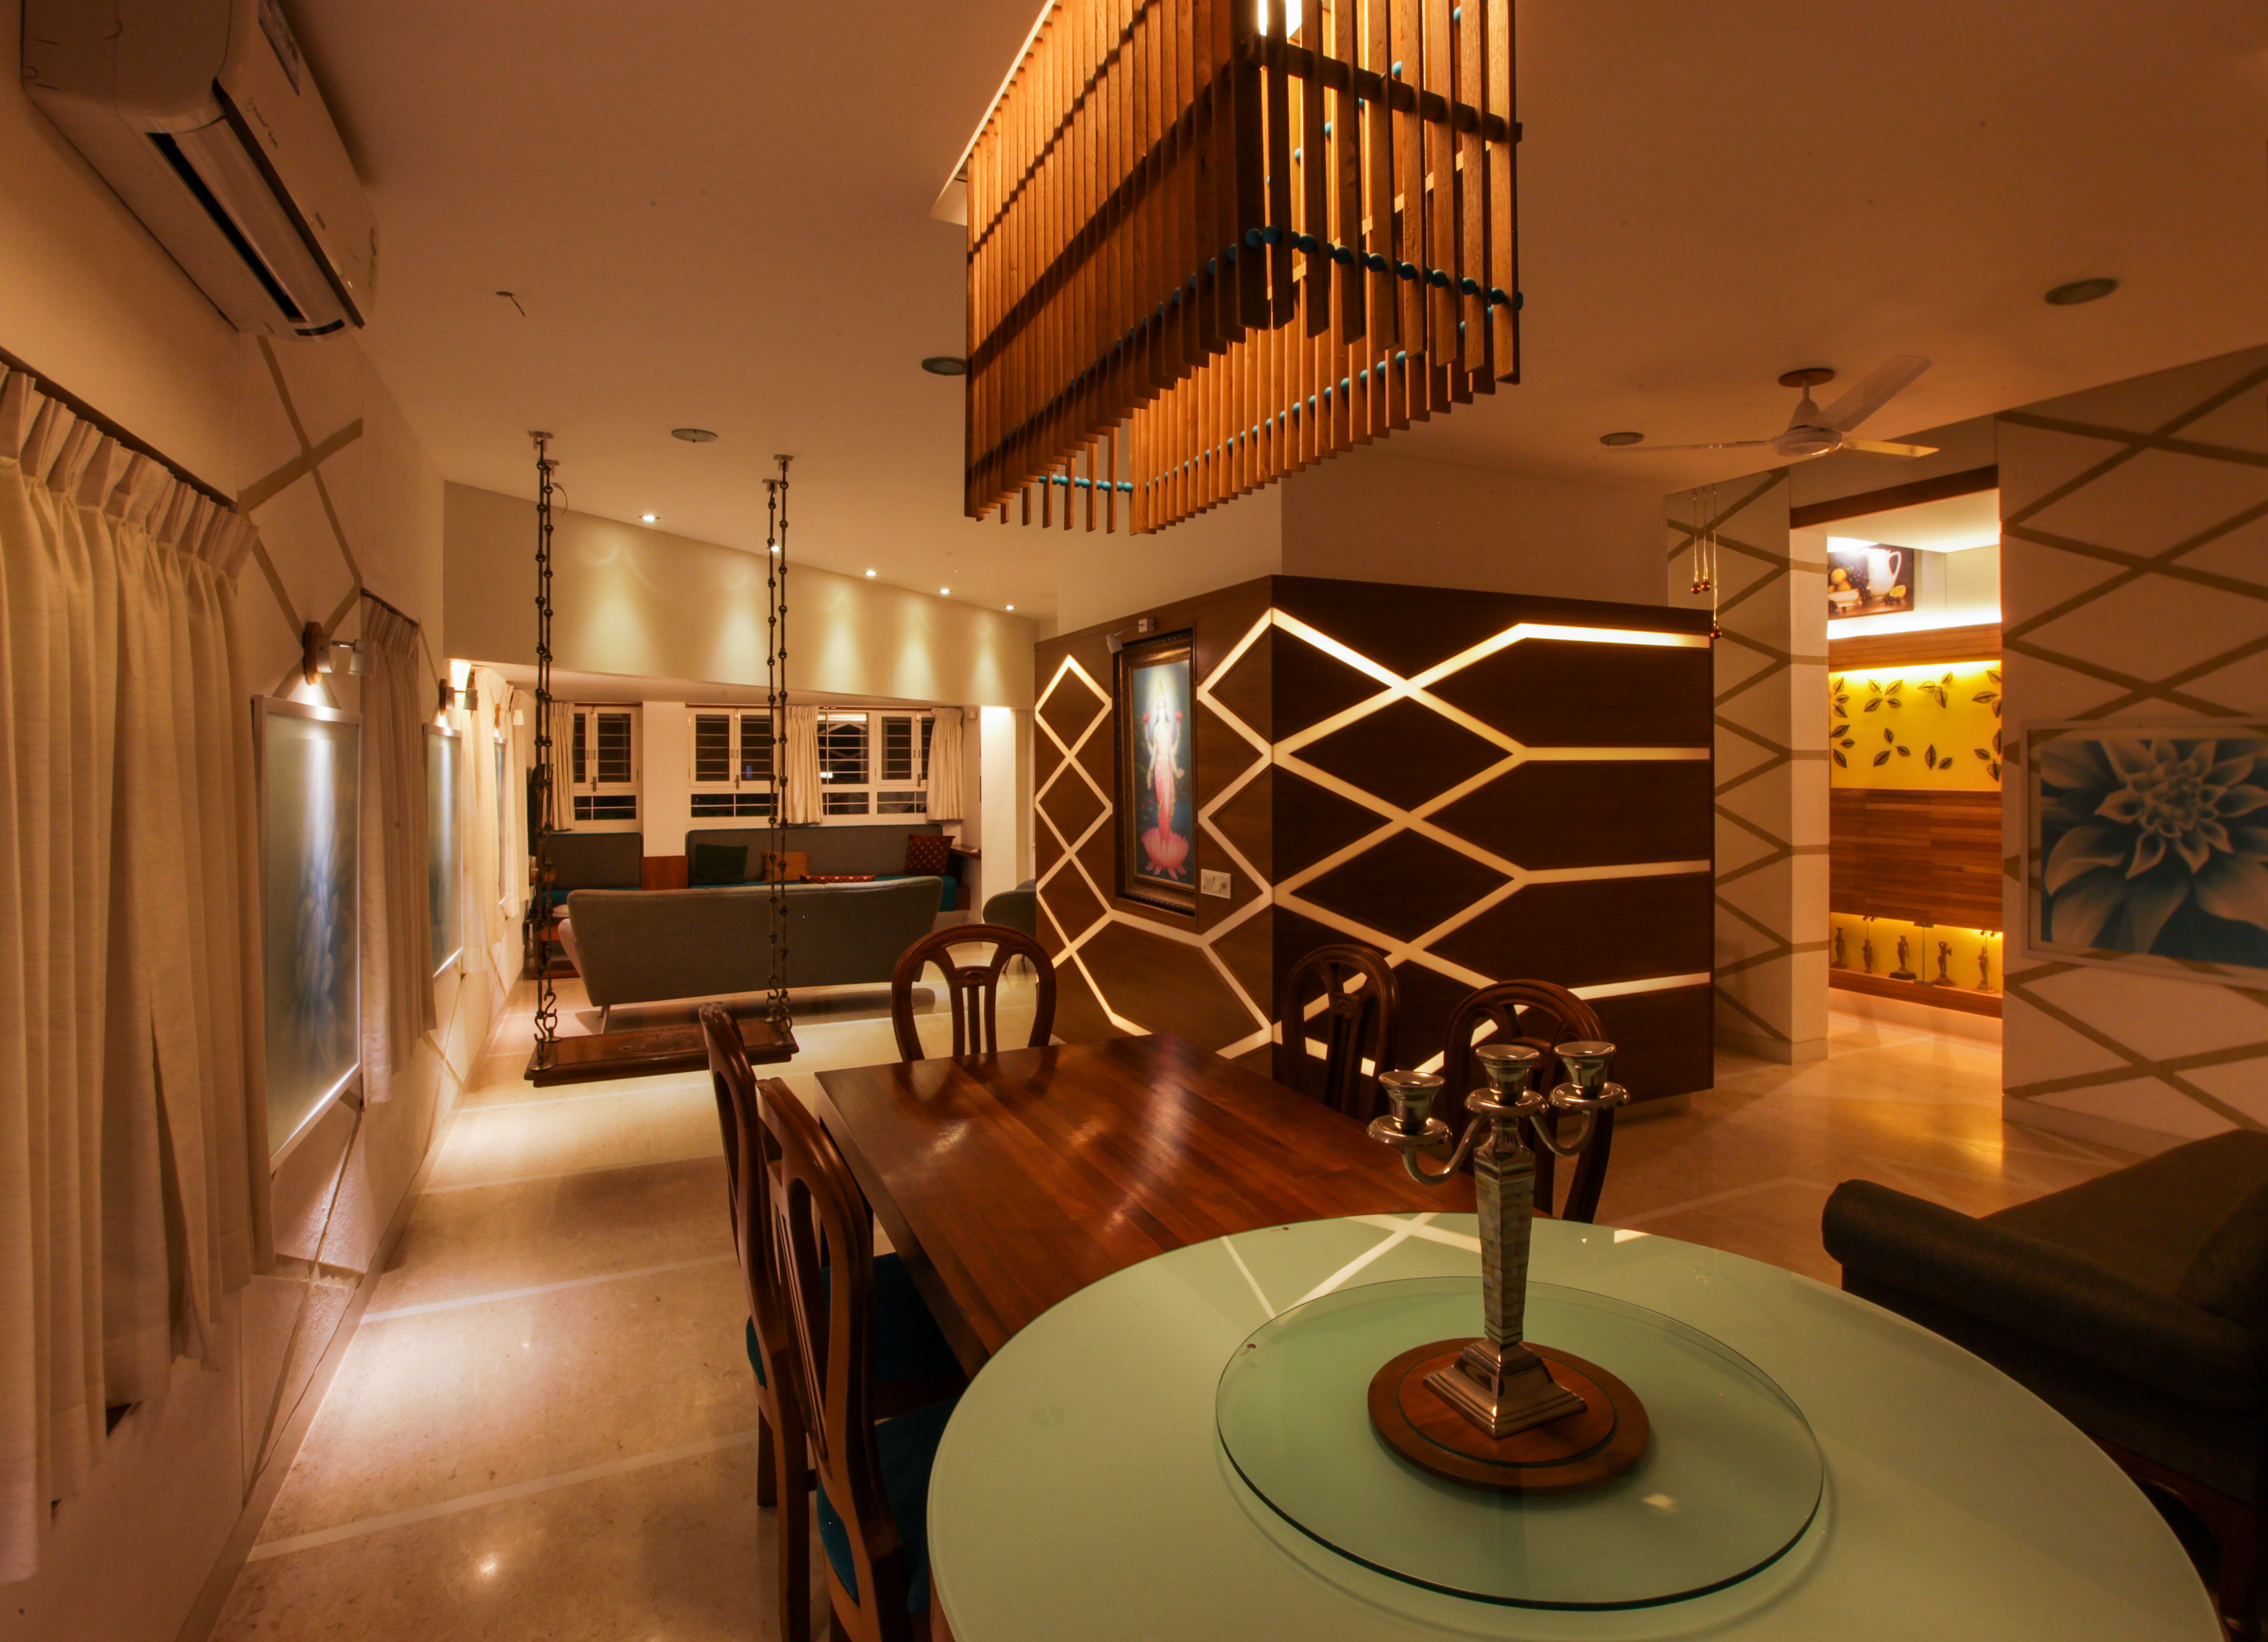 Main living and dining space at night